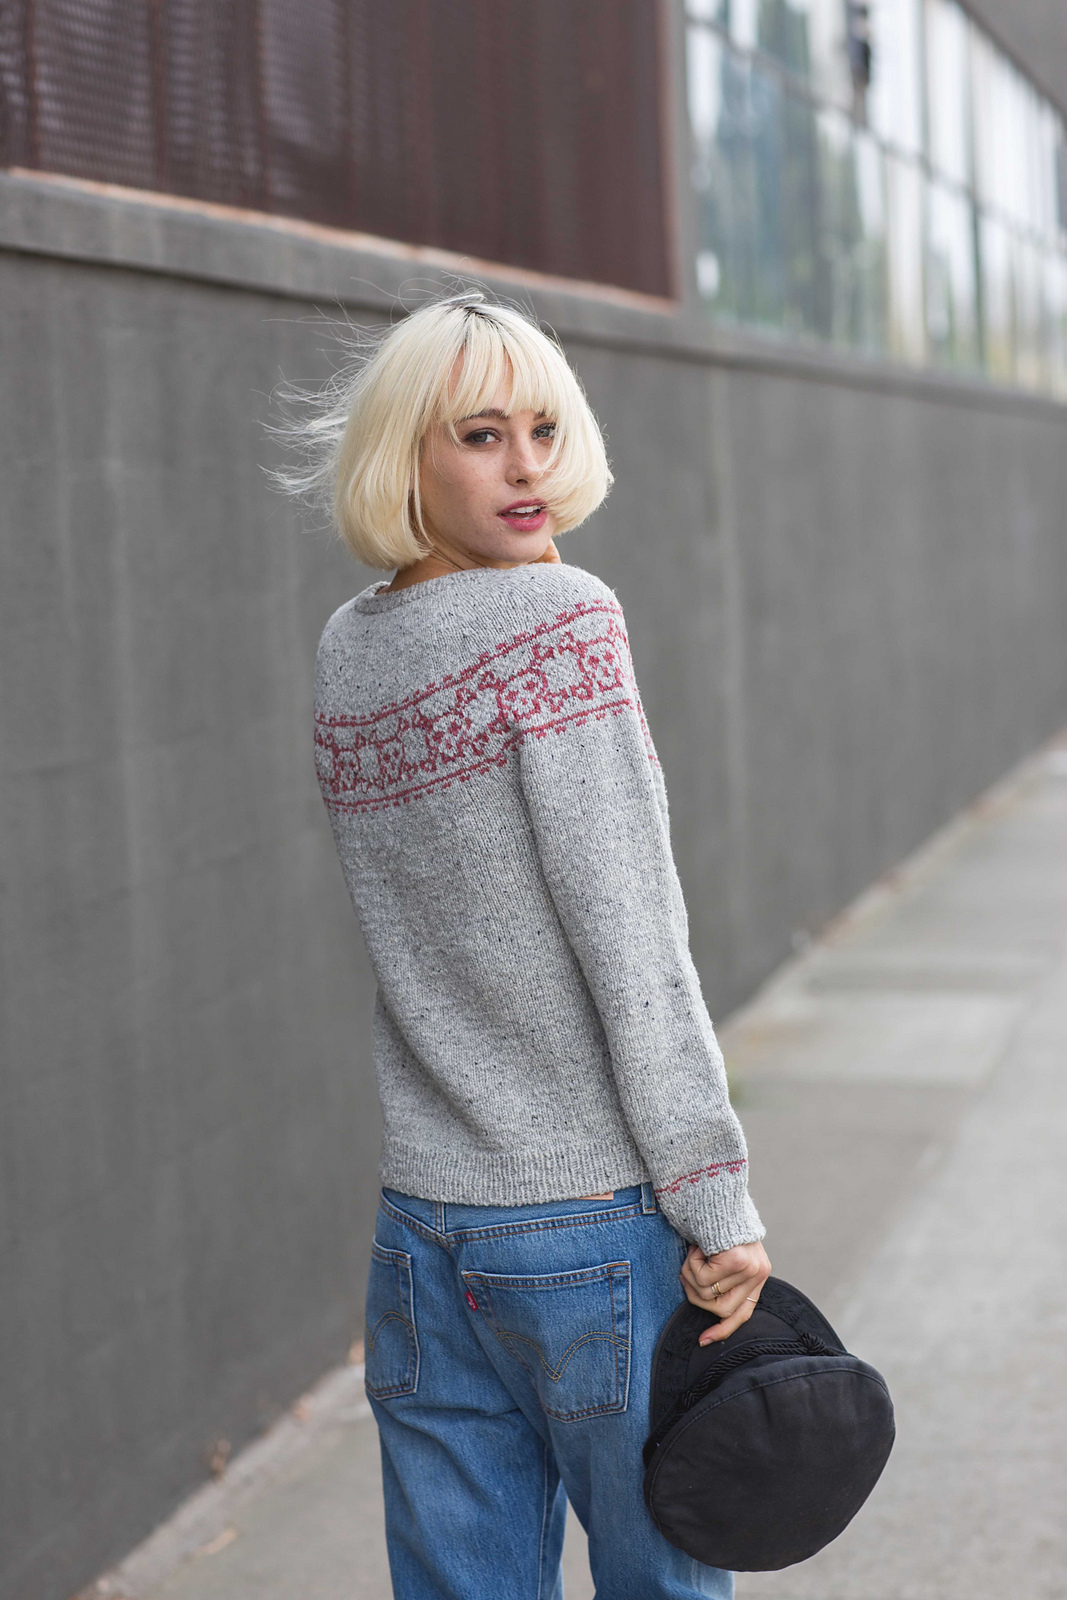 Skull & Bones Pullover by Andrea Rangel from AlterKnit Stitch Dictionary